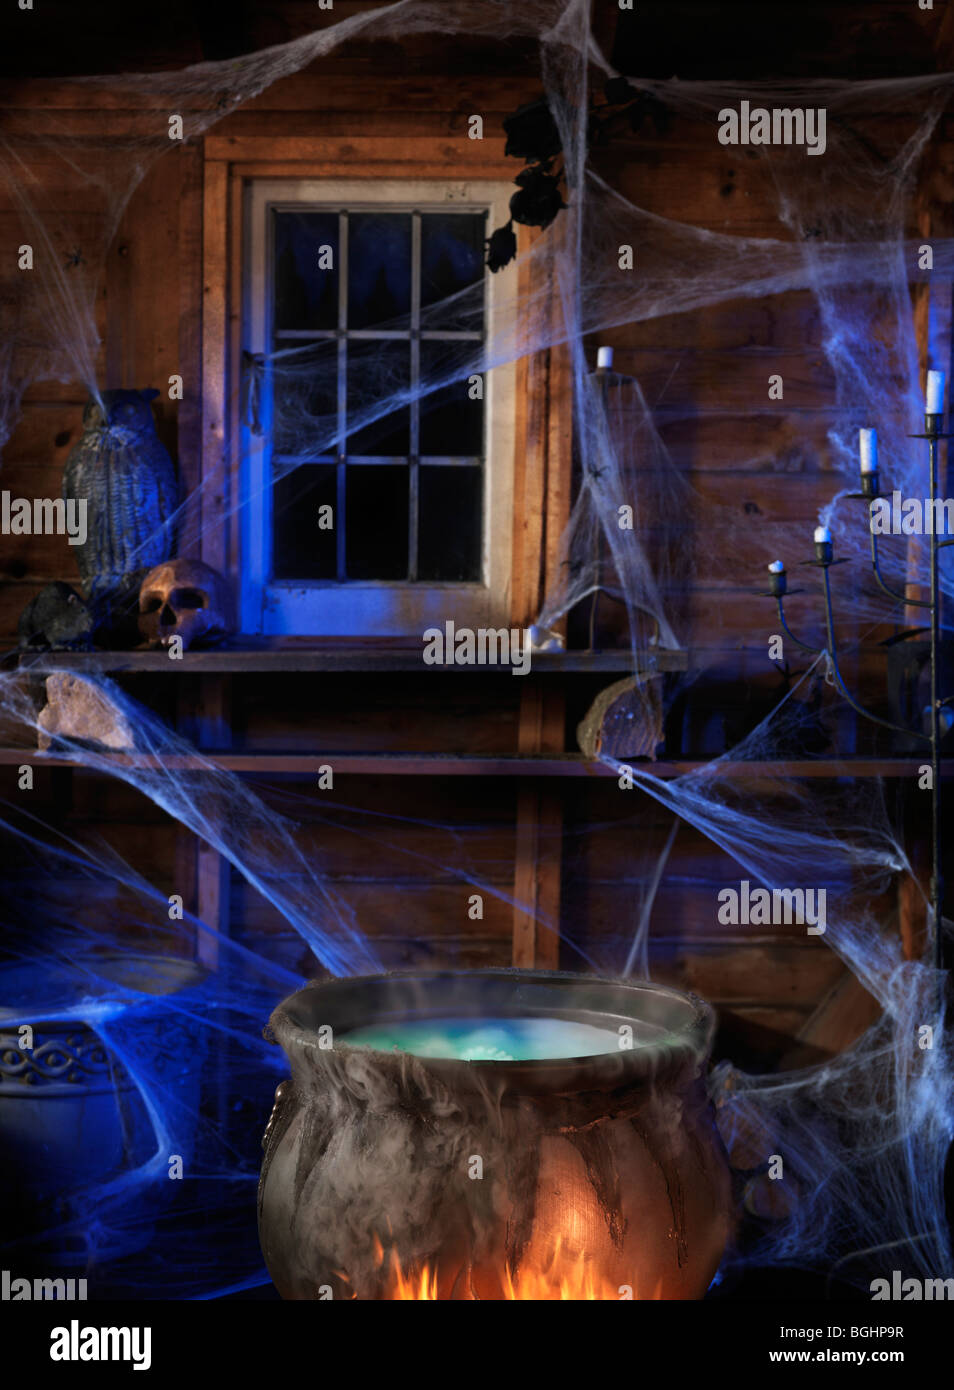 Steaming potion in a cauldron inside a witch cabin - Stock Image